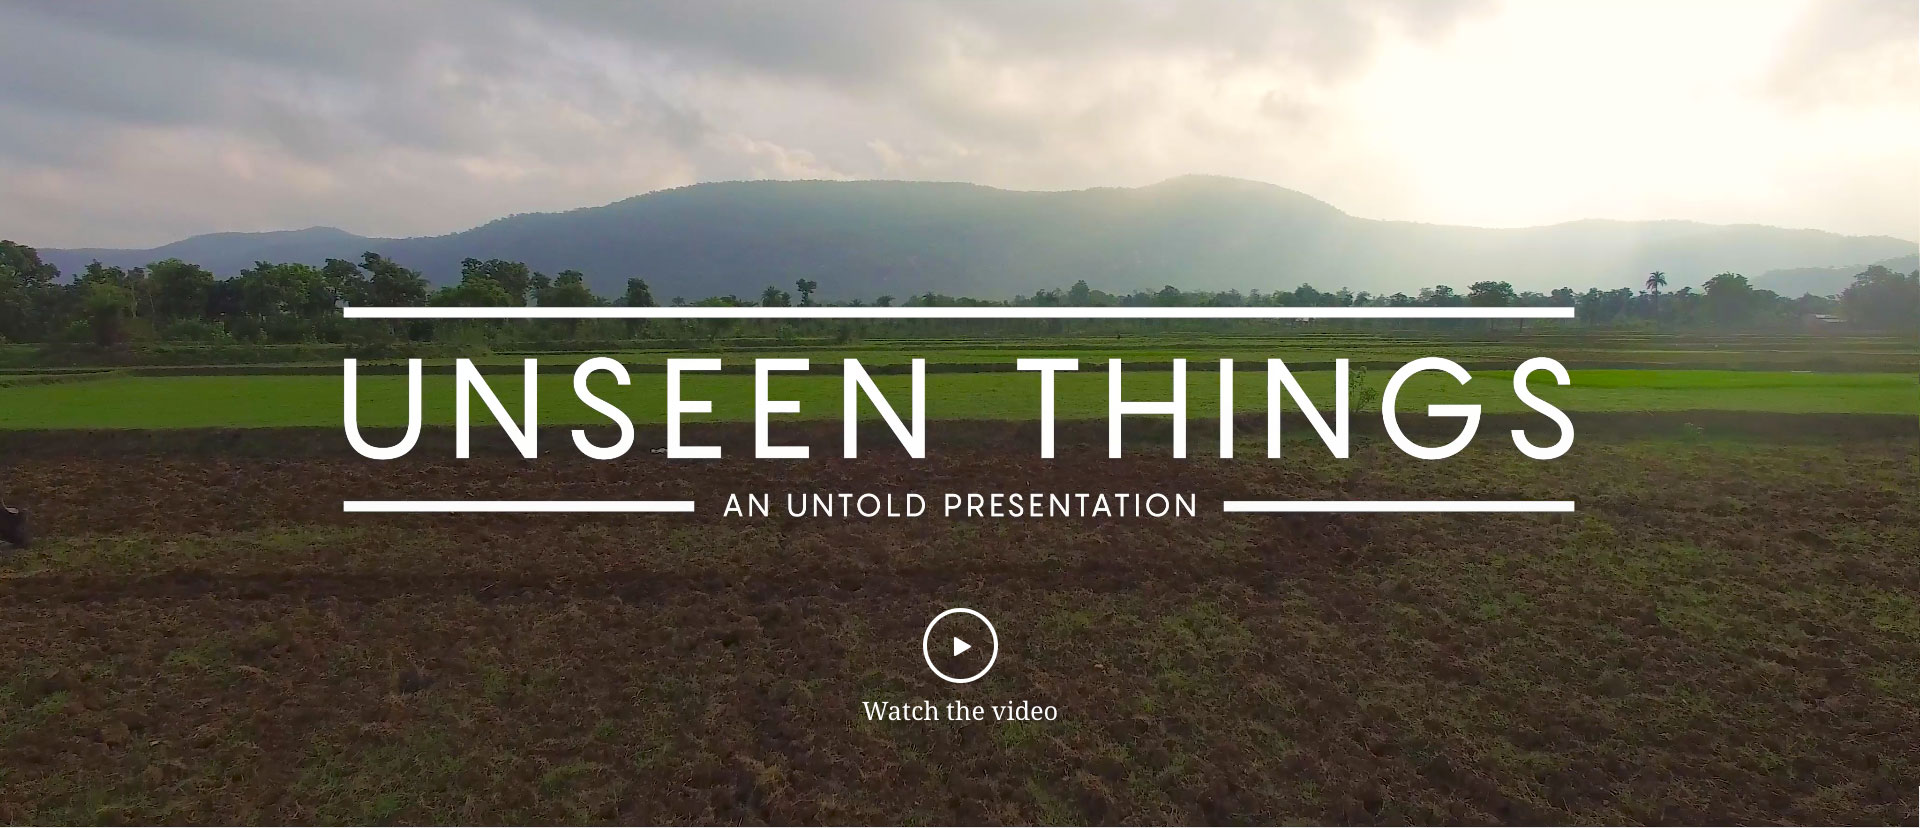 Unseen things an untold presentation